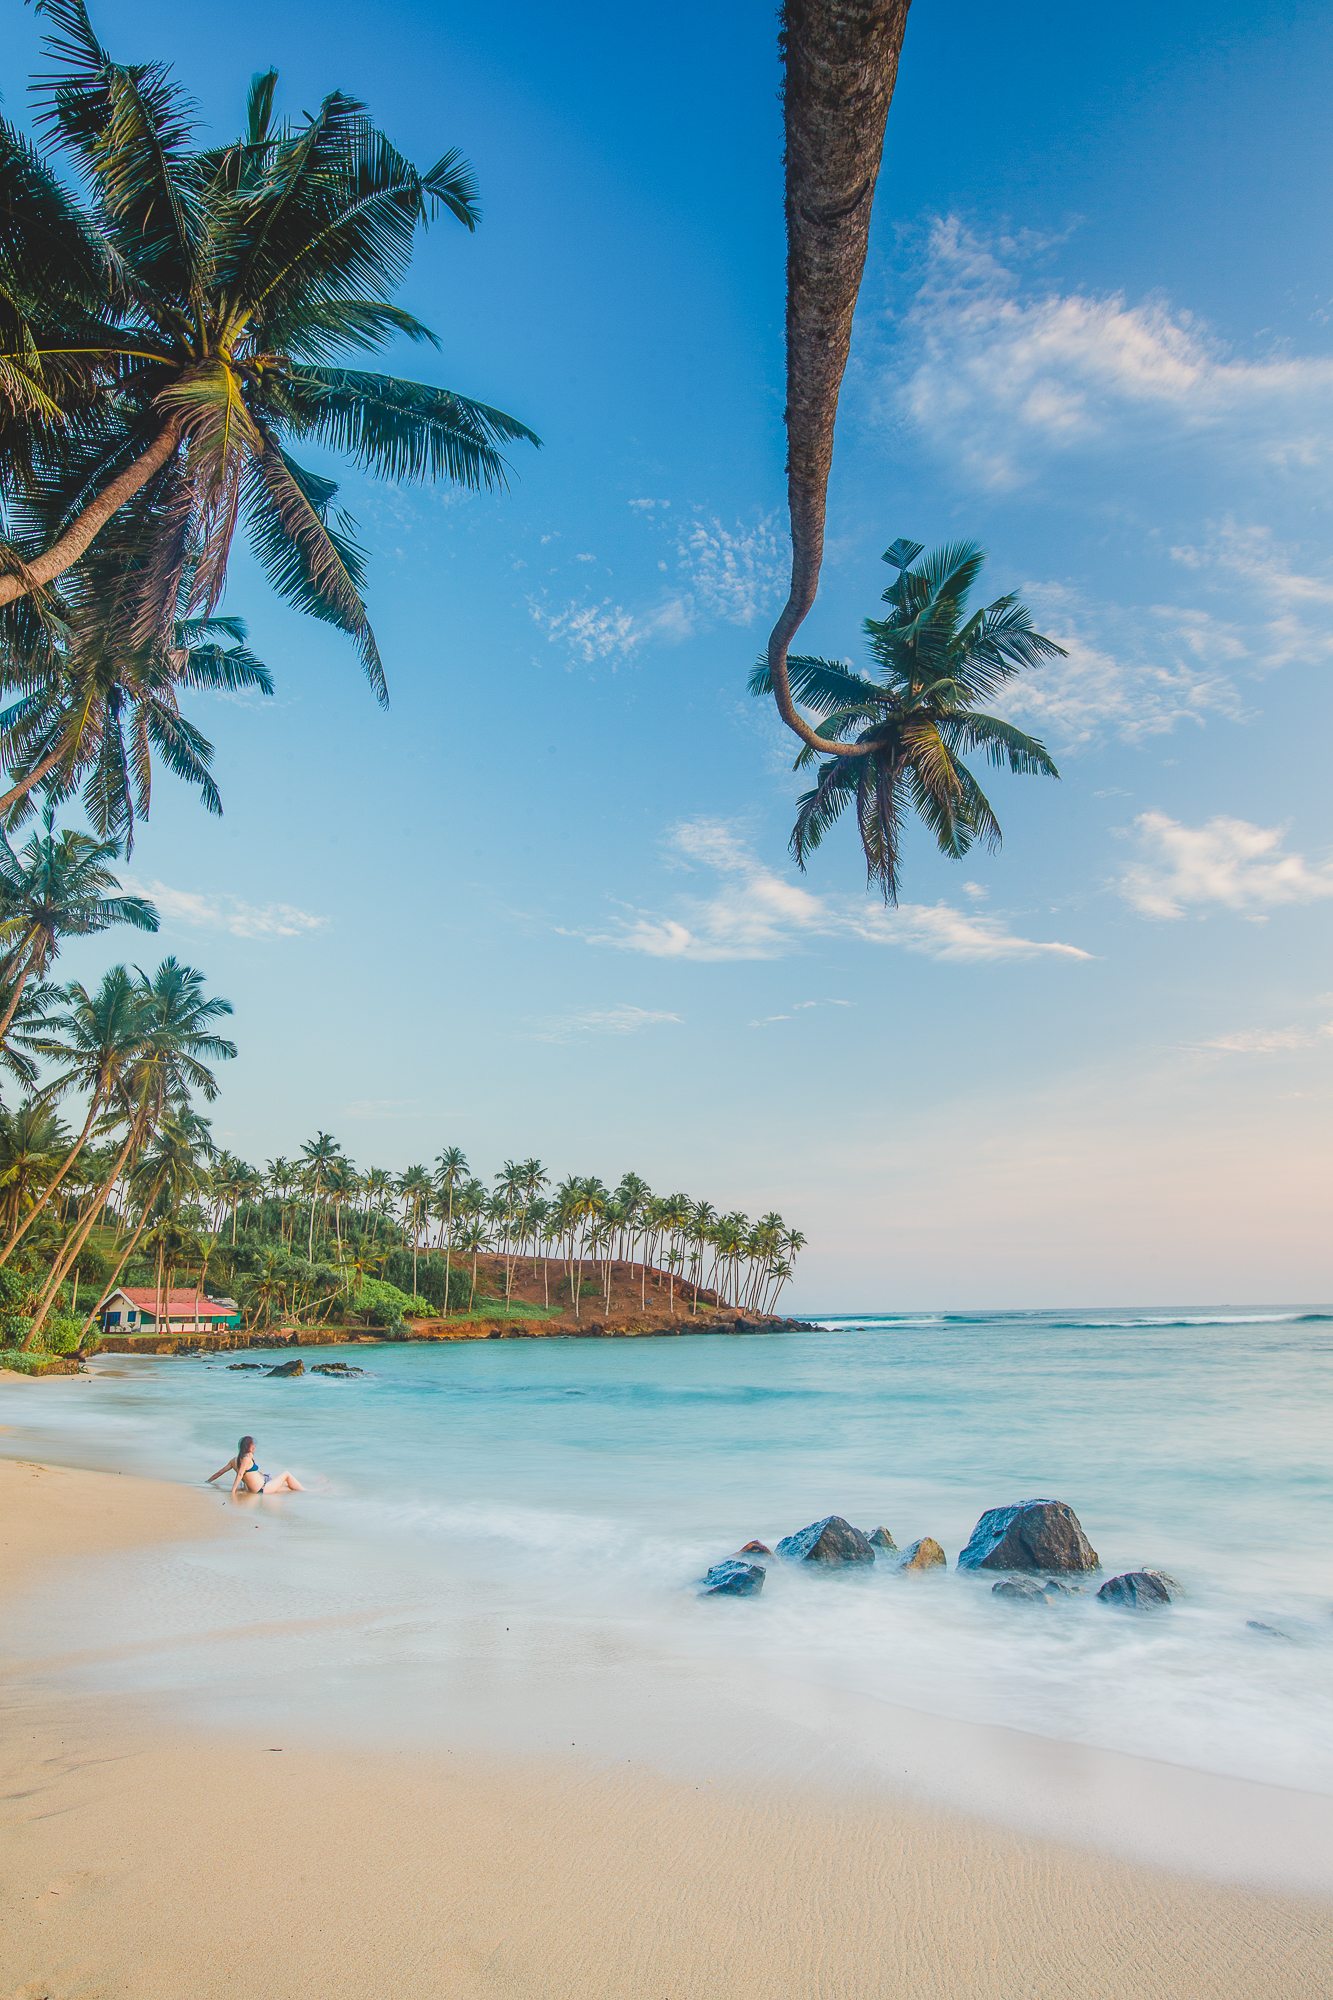 A palm beach in Sri Lanka